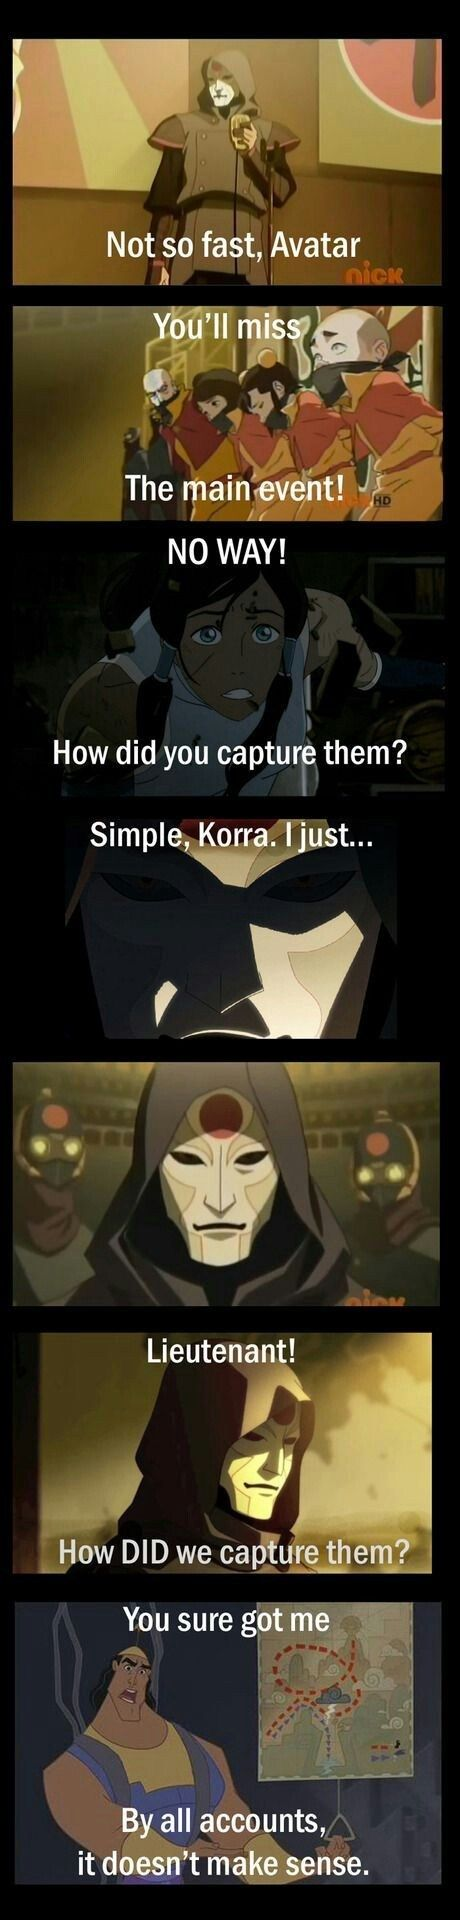 41 of the Things That Make Avatar: The Last Airbender the Greatest Show Ever - Memebase - Funny Memes | Funny Pics With Caption